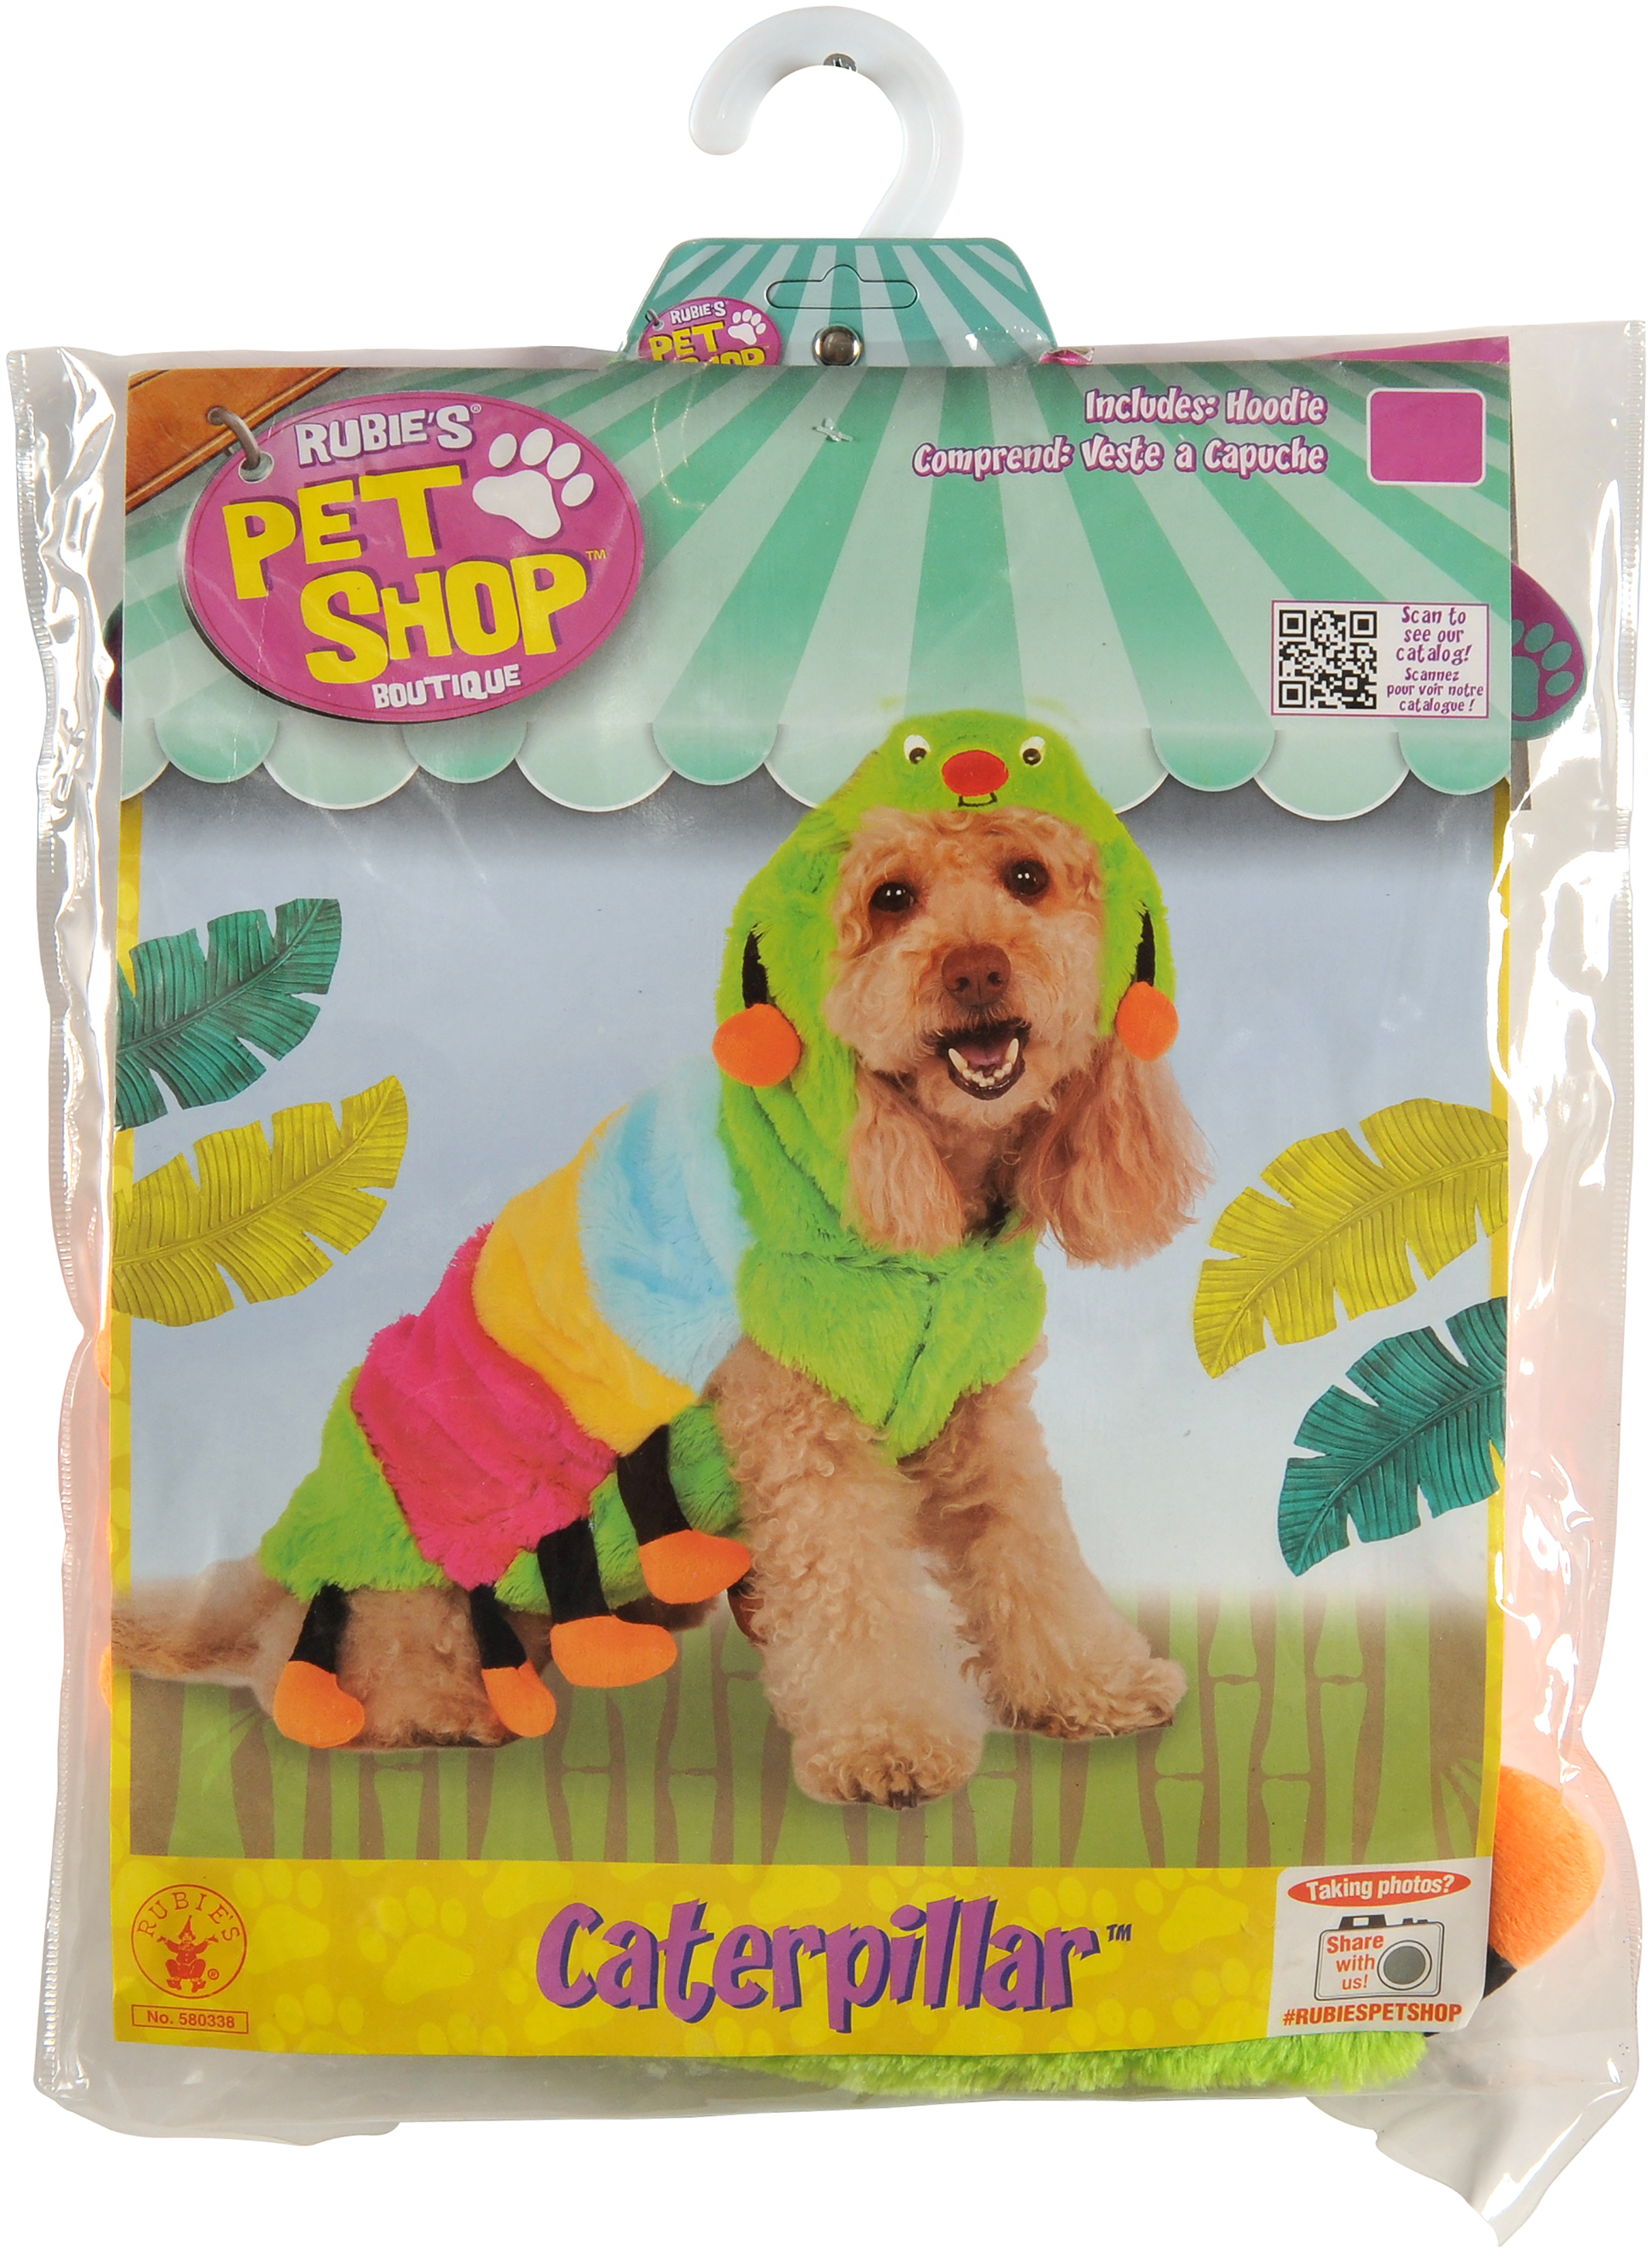 Rubieu0027s Caterpillar Cutie Pet Costume - Extra Small  sc 1 st  Walmart & Rubieu0027s Caterpillar Cutie Pet Costume - Extra Small - Walmart.com